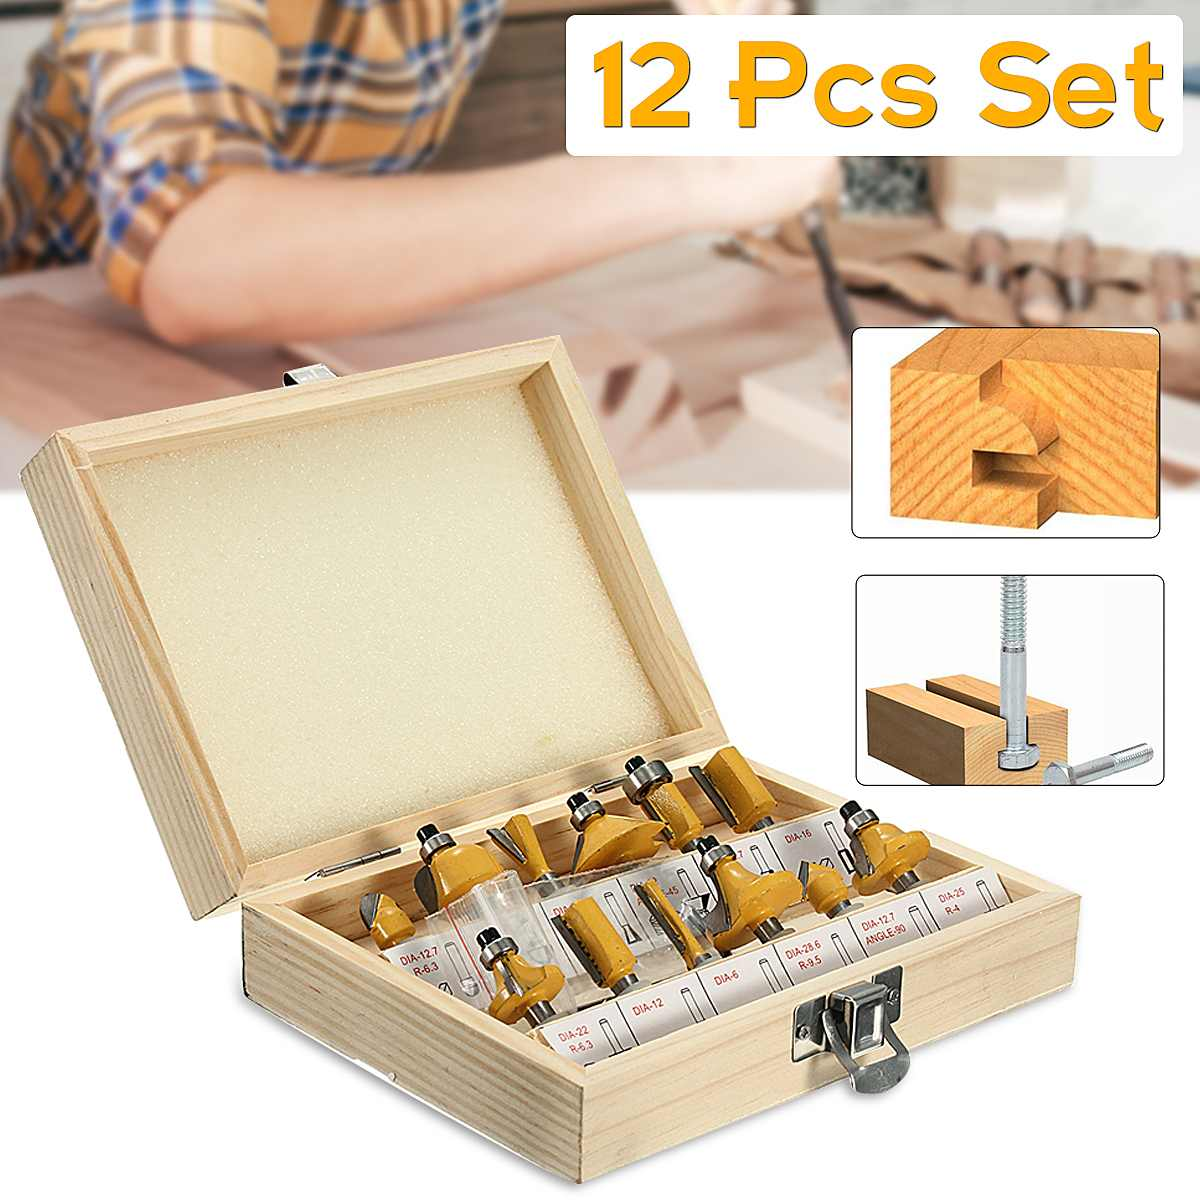 12pcs/set Woodworking Milling Cutters 1/4/8mm Shank Carbide Router Bit For Wood Cutter Engraving Cutting Tools